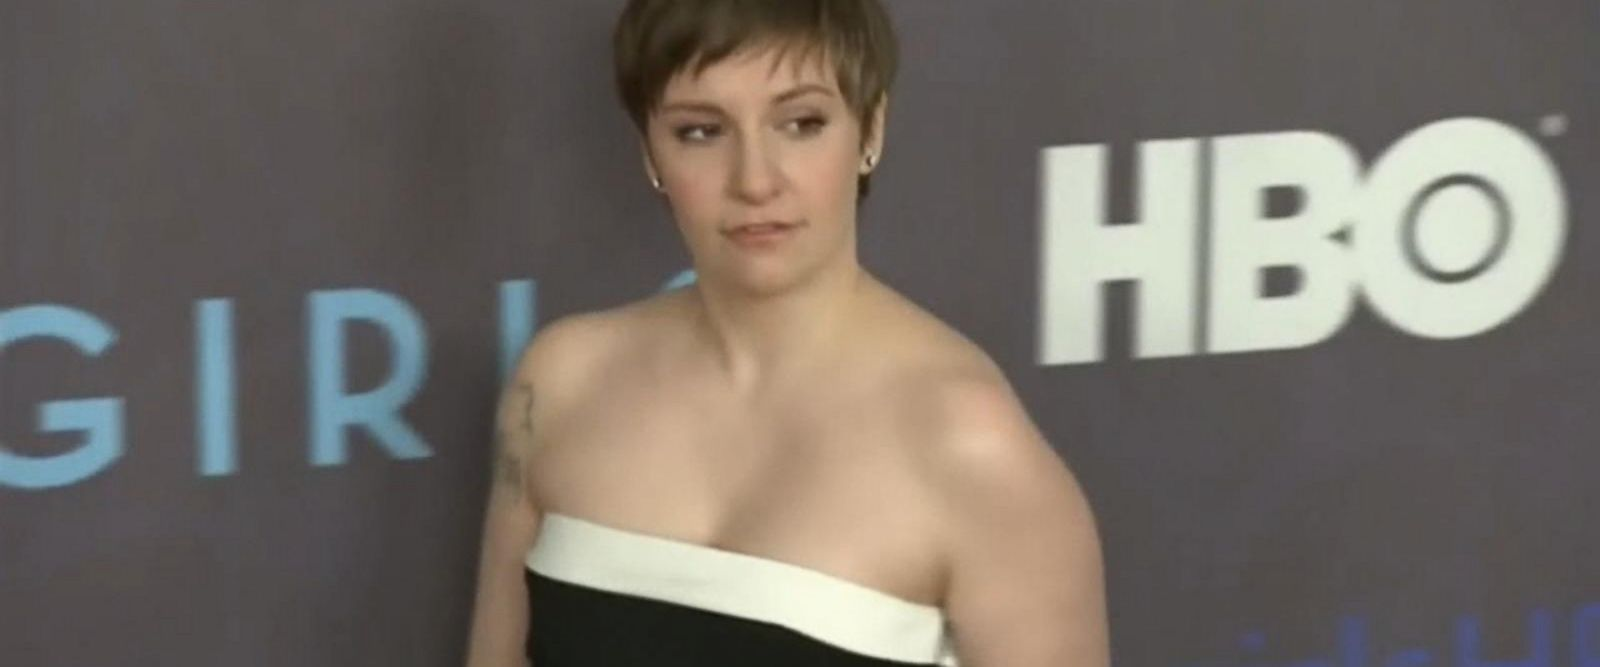 VIDEO: Lena Dunham defends her writer from sexual assault claim